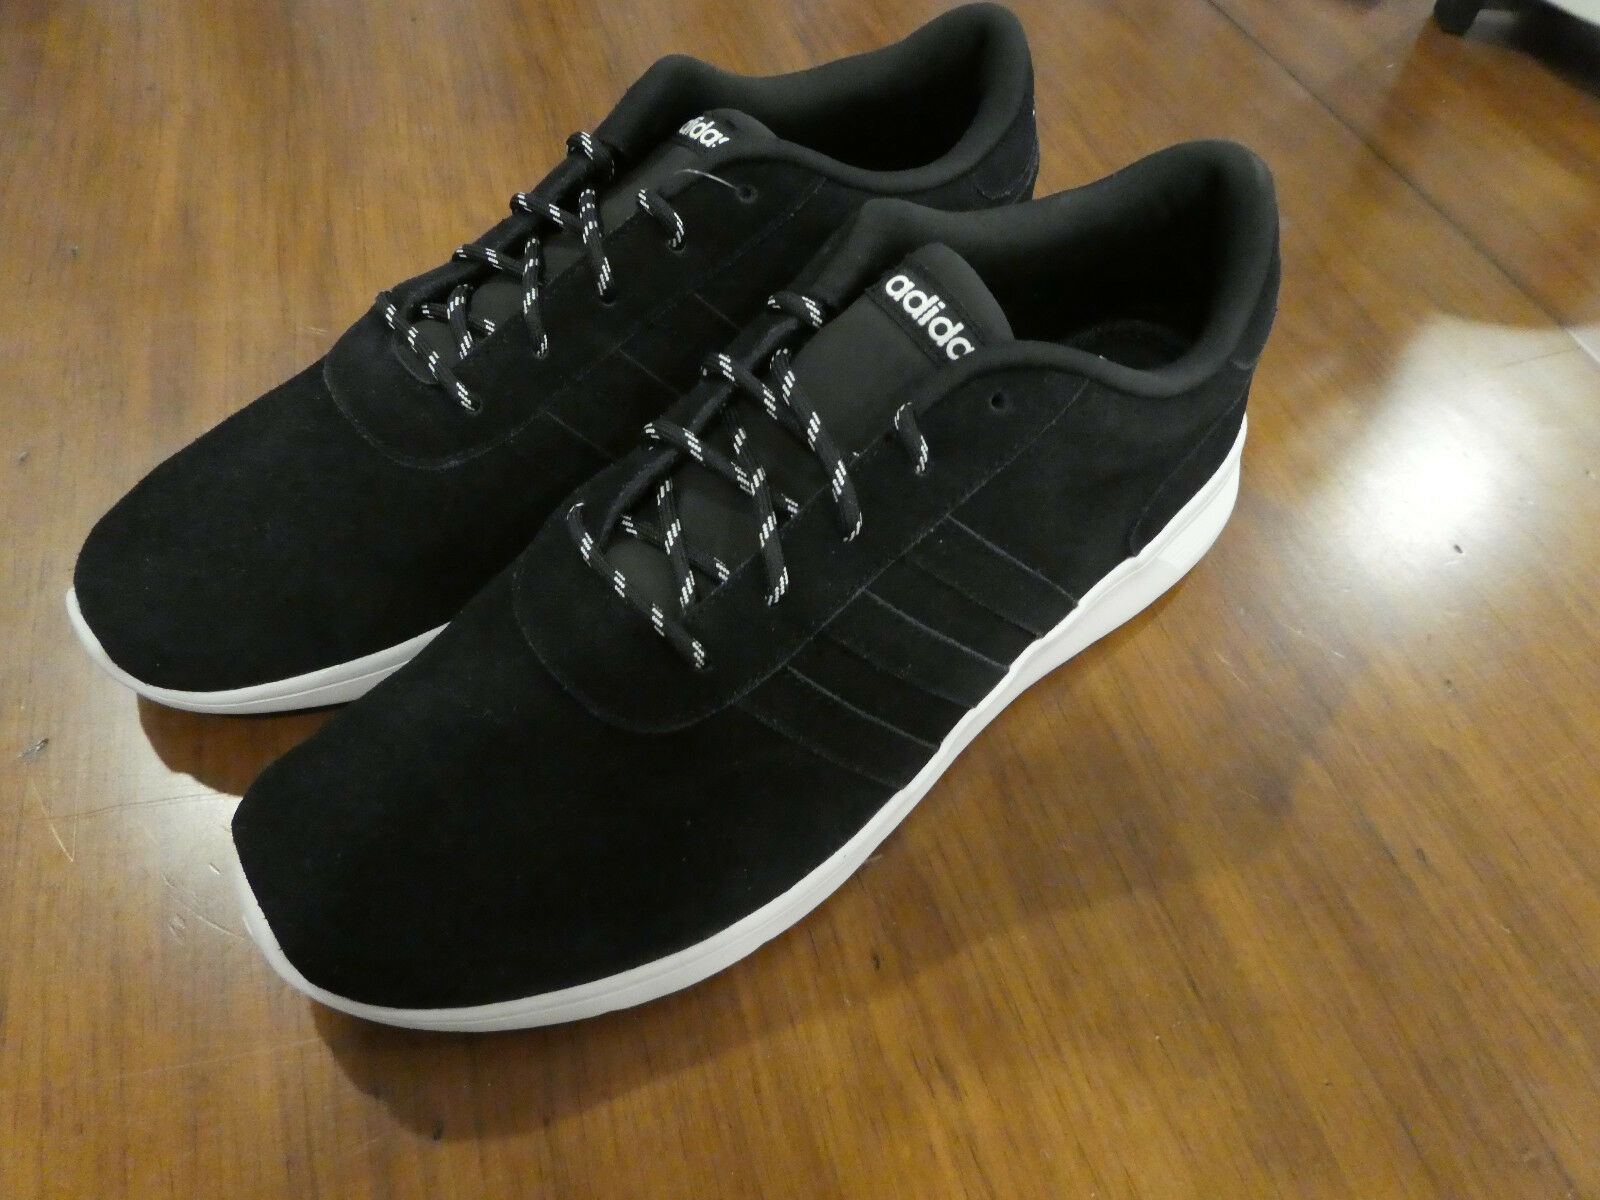 Adidas Lite Racer Lux F98105 F98105 F98105 new shoes mens sneakers black suede 514fb9